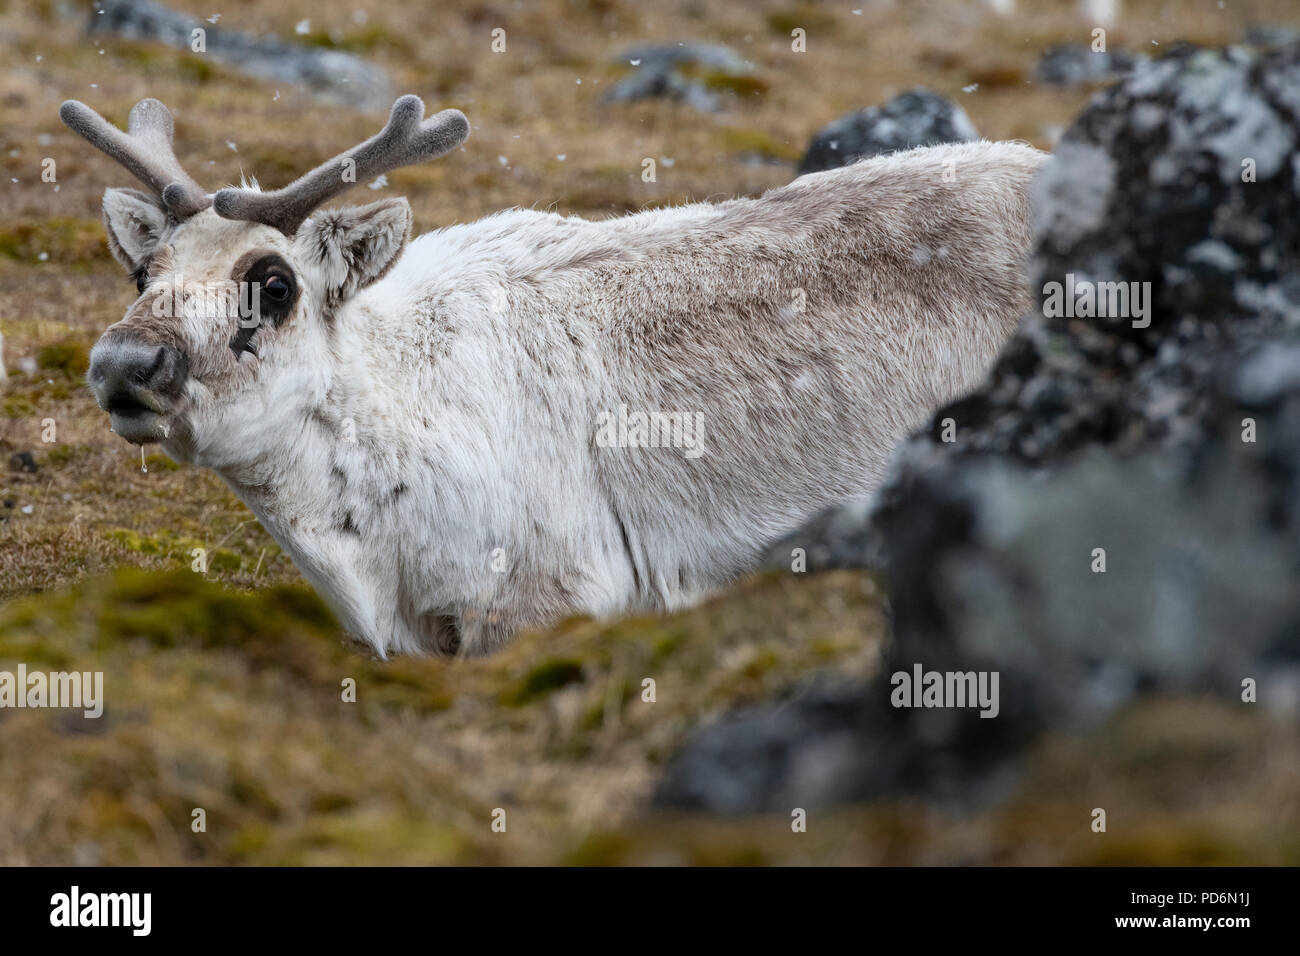 Norway, Svalbard, Spitsbergen. Svalbard reindeer (Rangifer tarandus platyrhynchus) in snow. Stock Photo